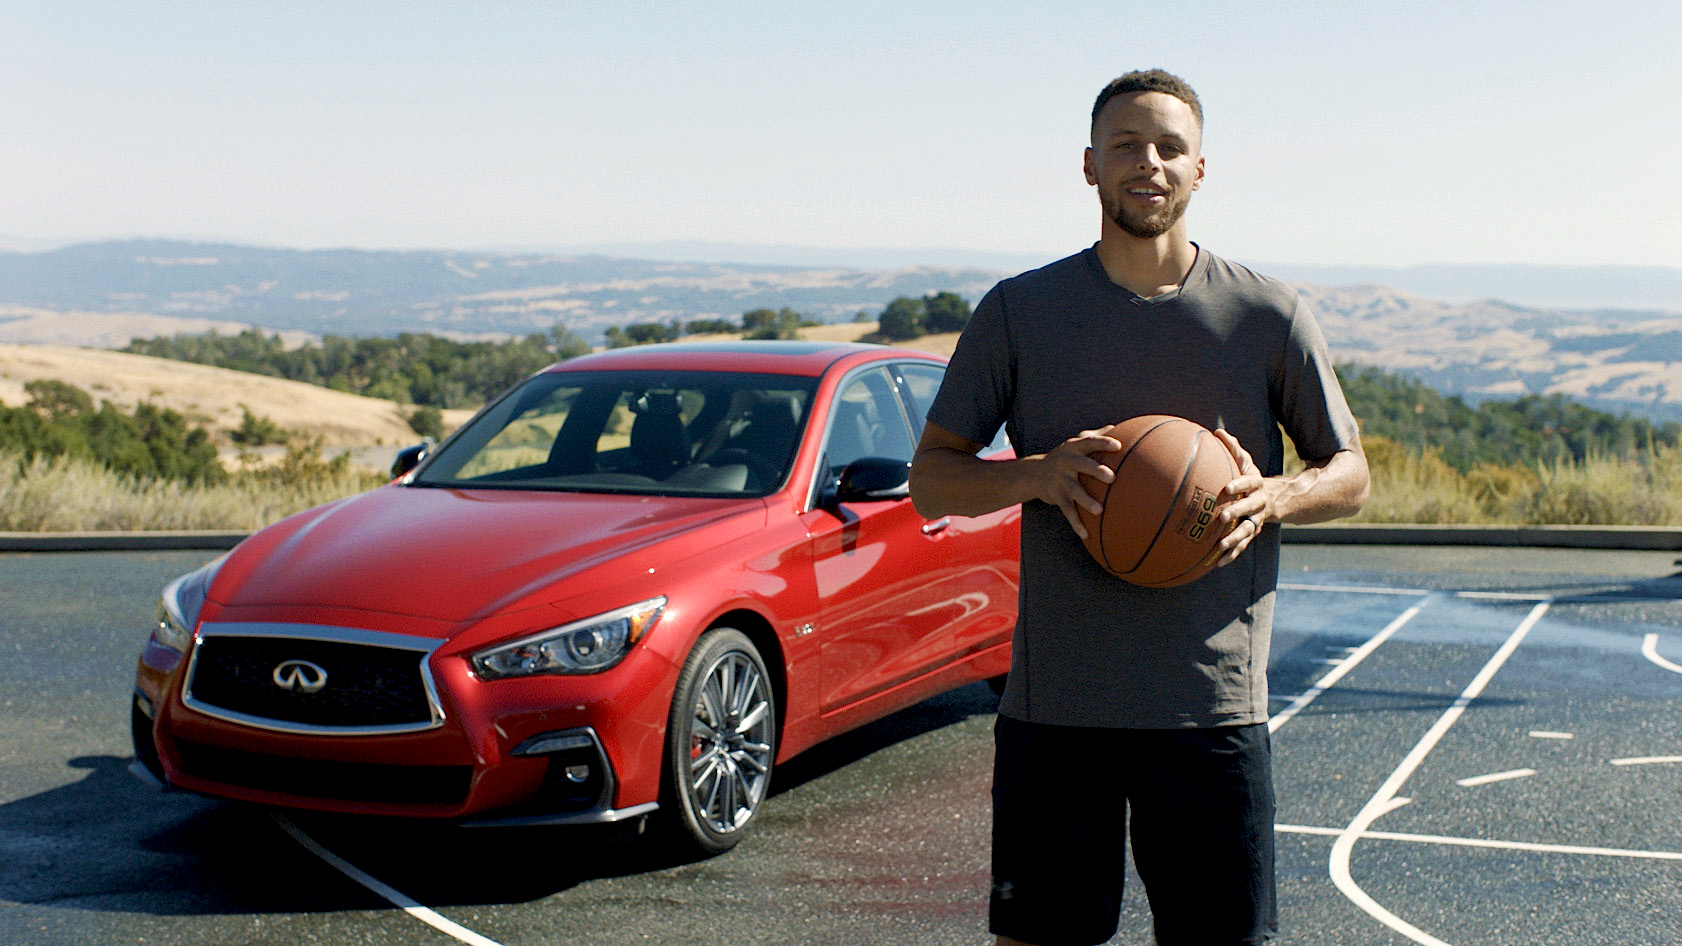 2018 INFINITI Q50 and Stephen Curry announce global partnership